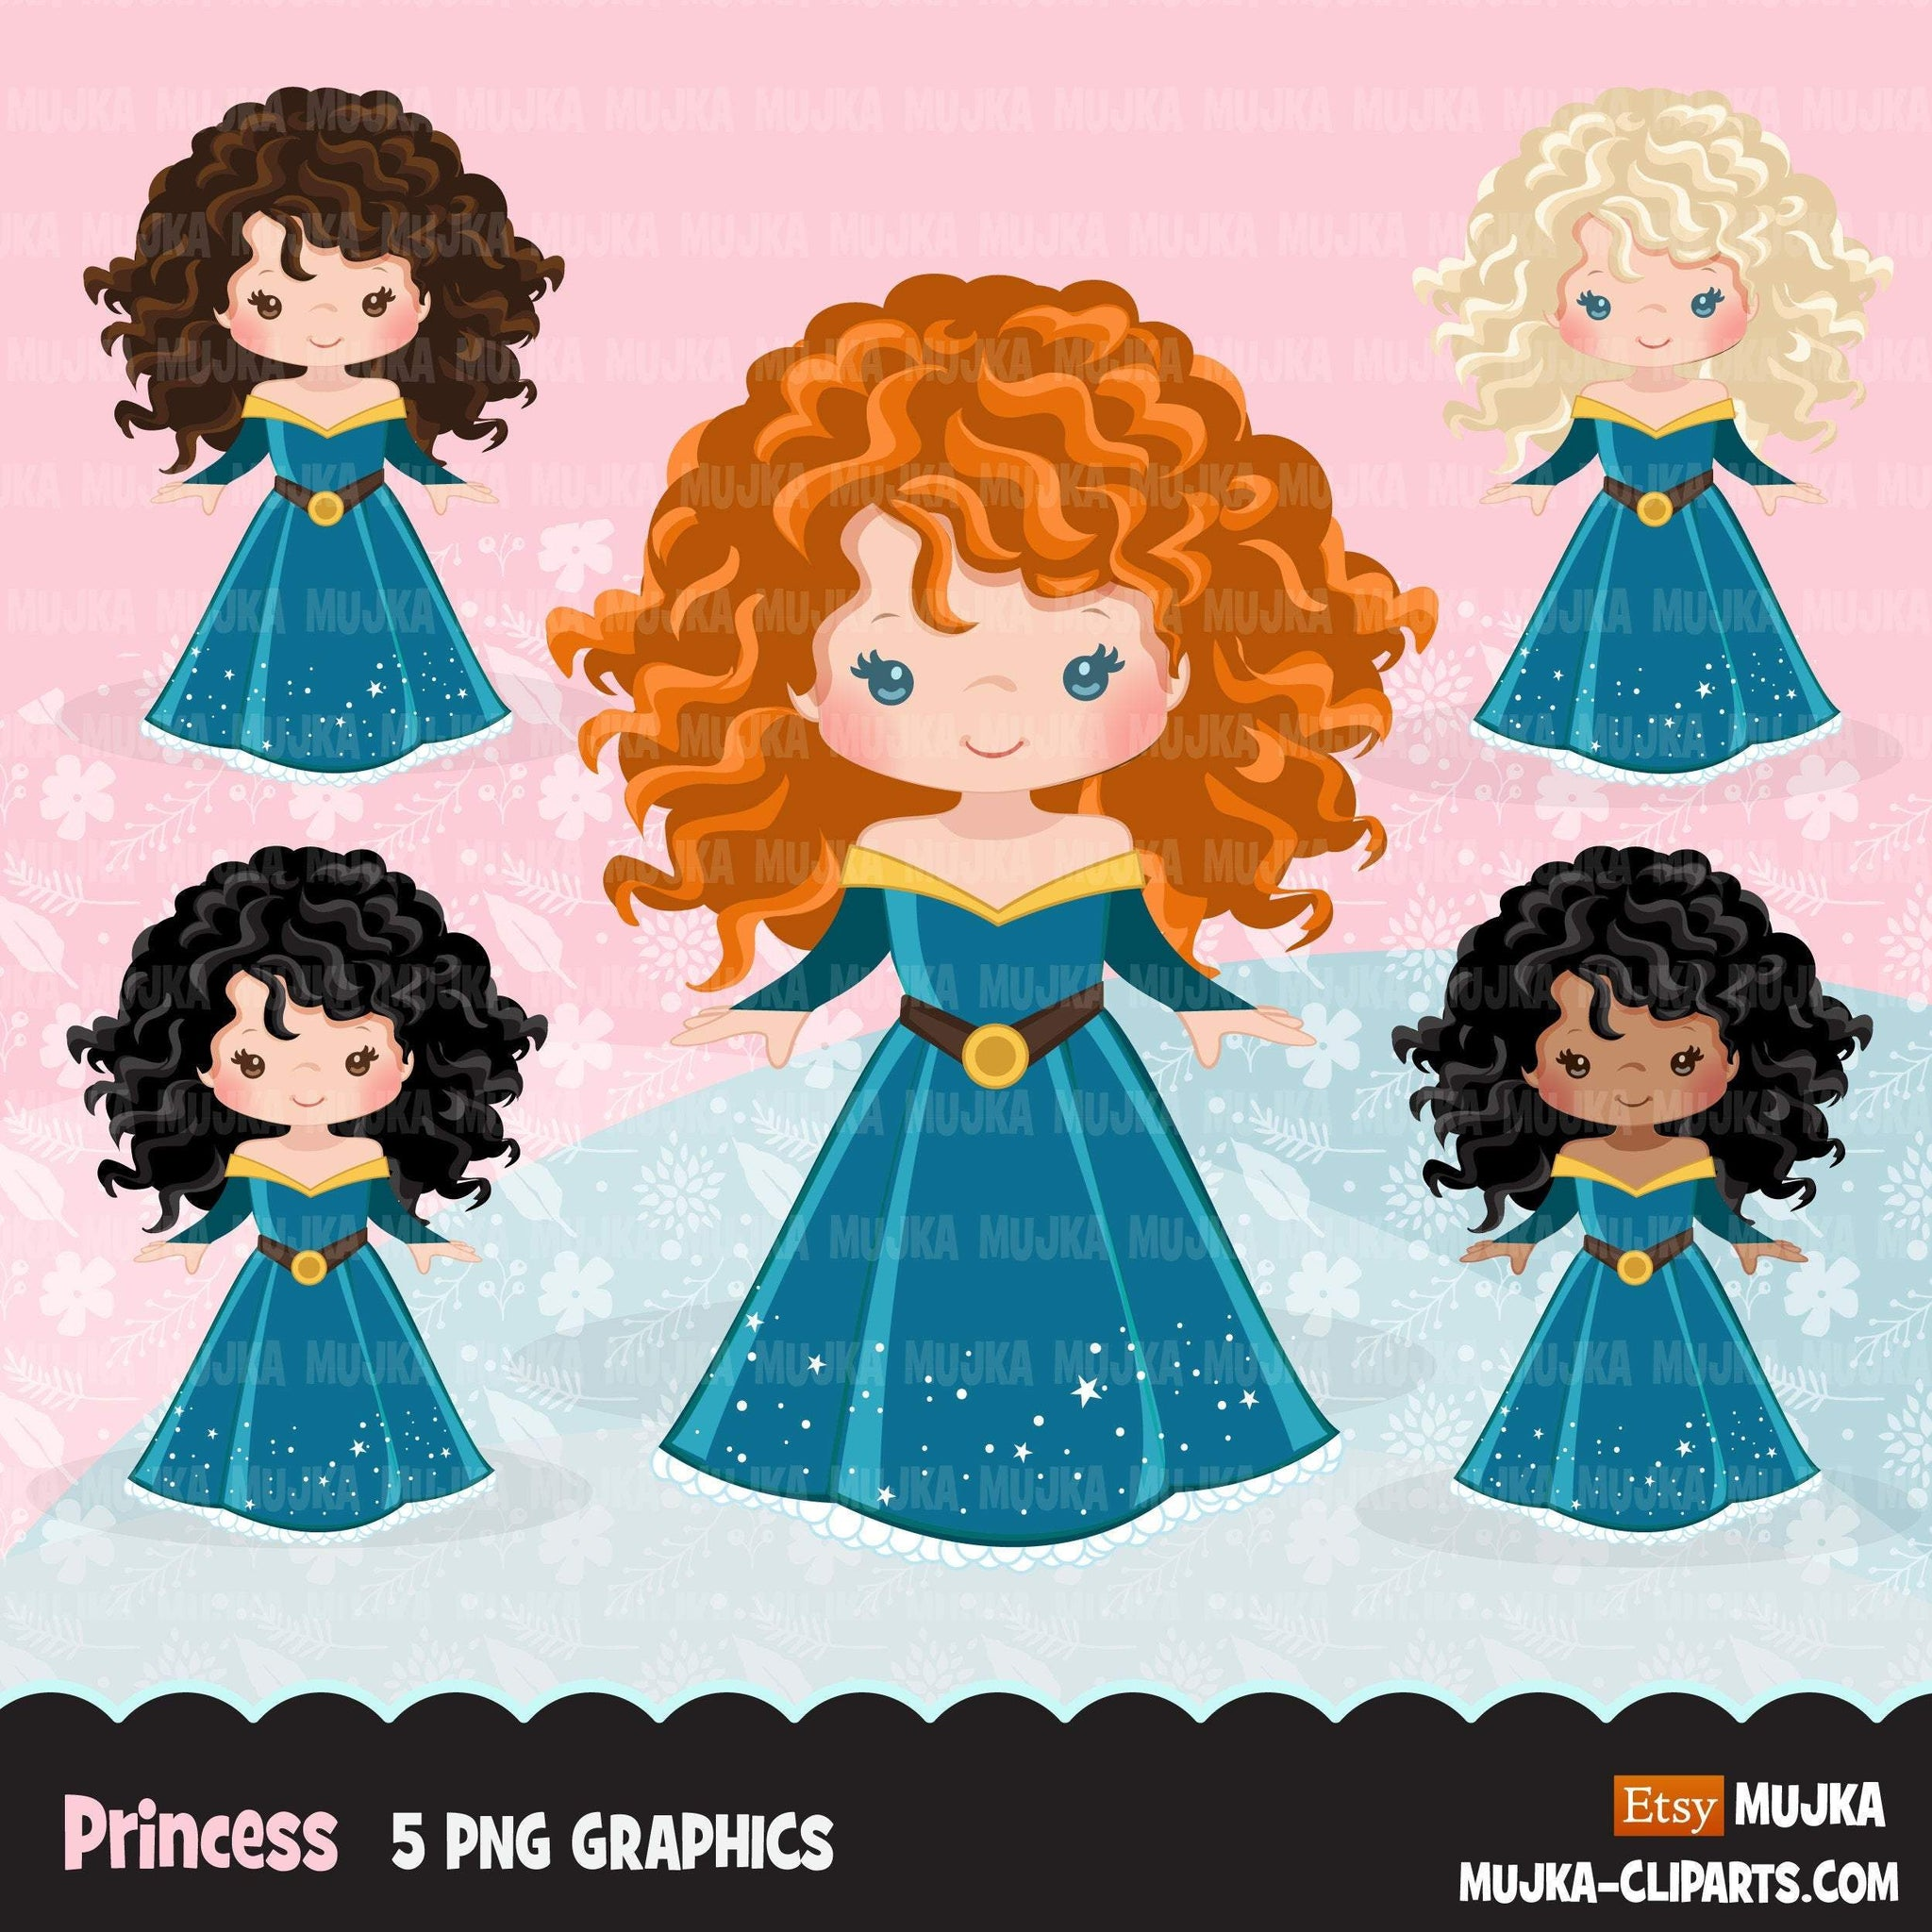 Princess clipart, fairy tale graphics, girls story book, dark blue princess dress, commercial use clip art